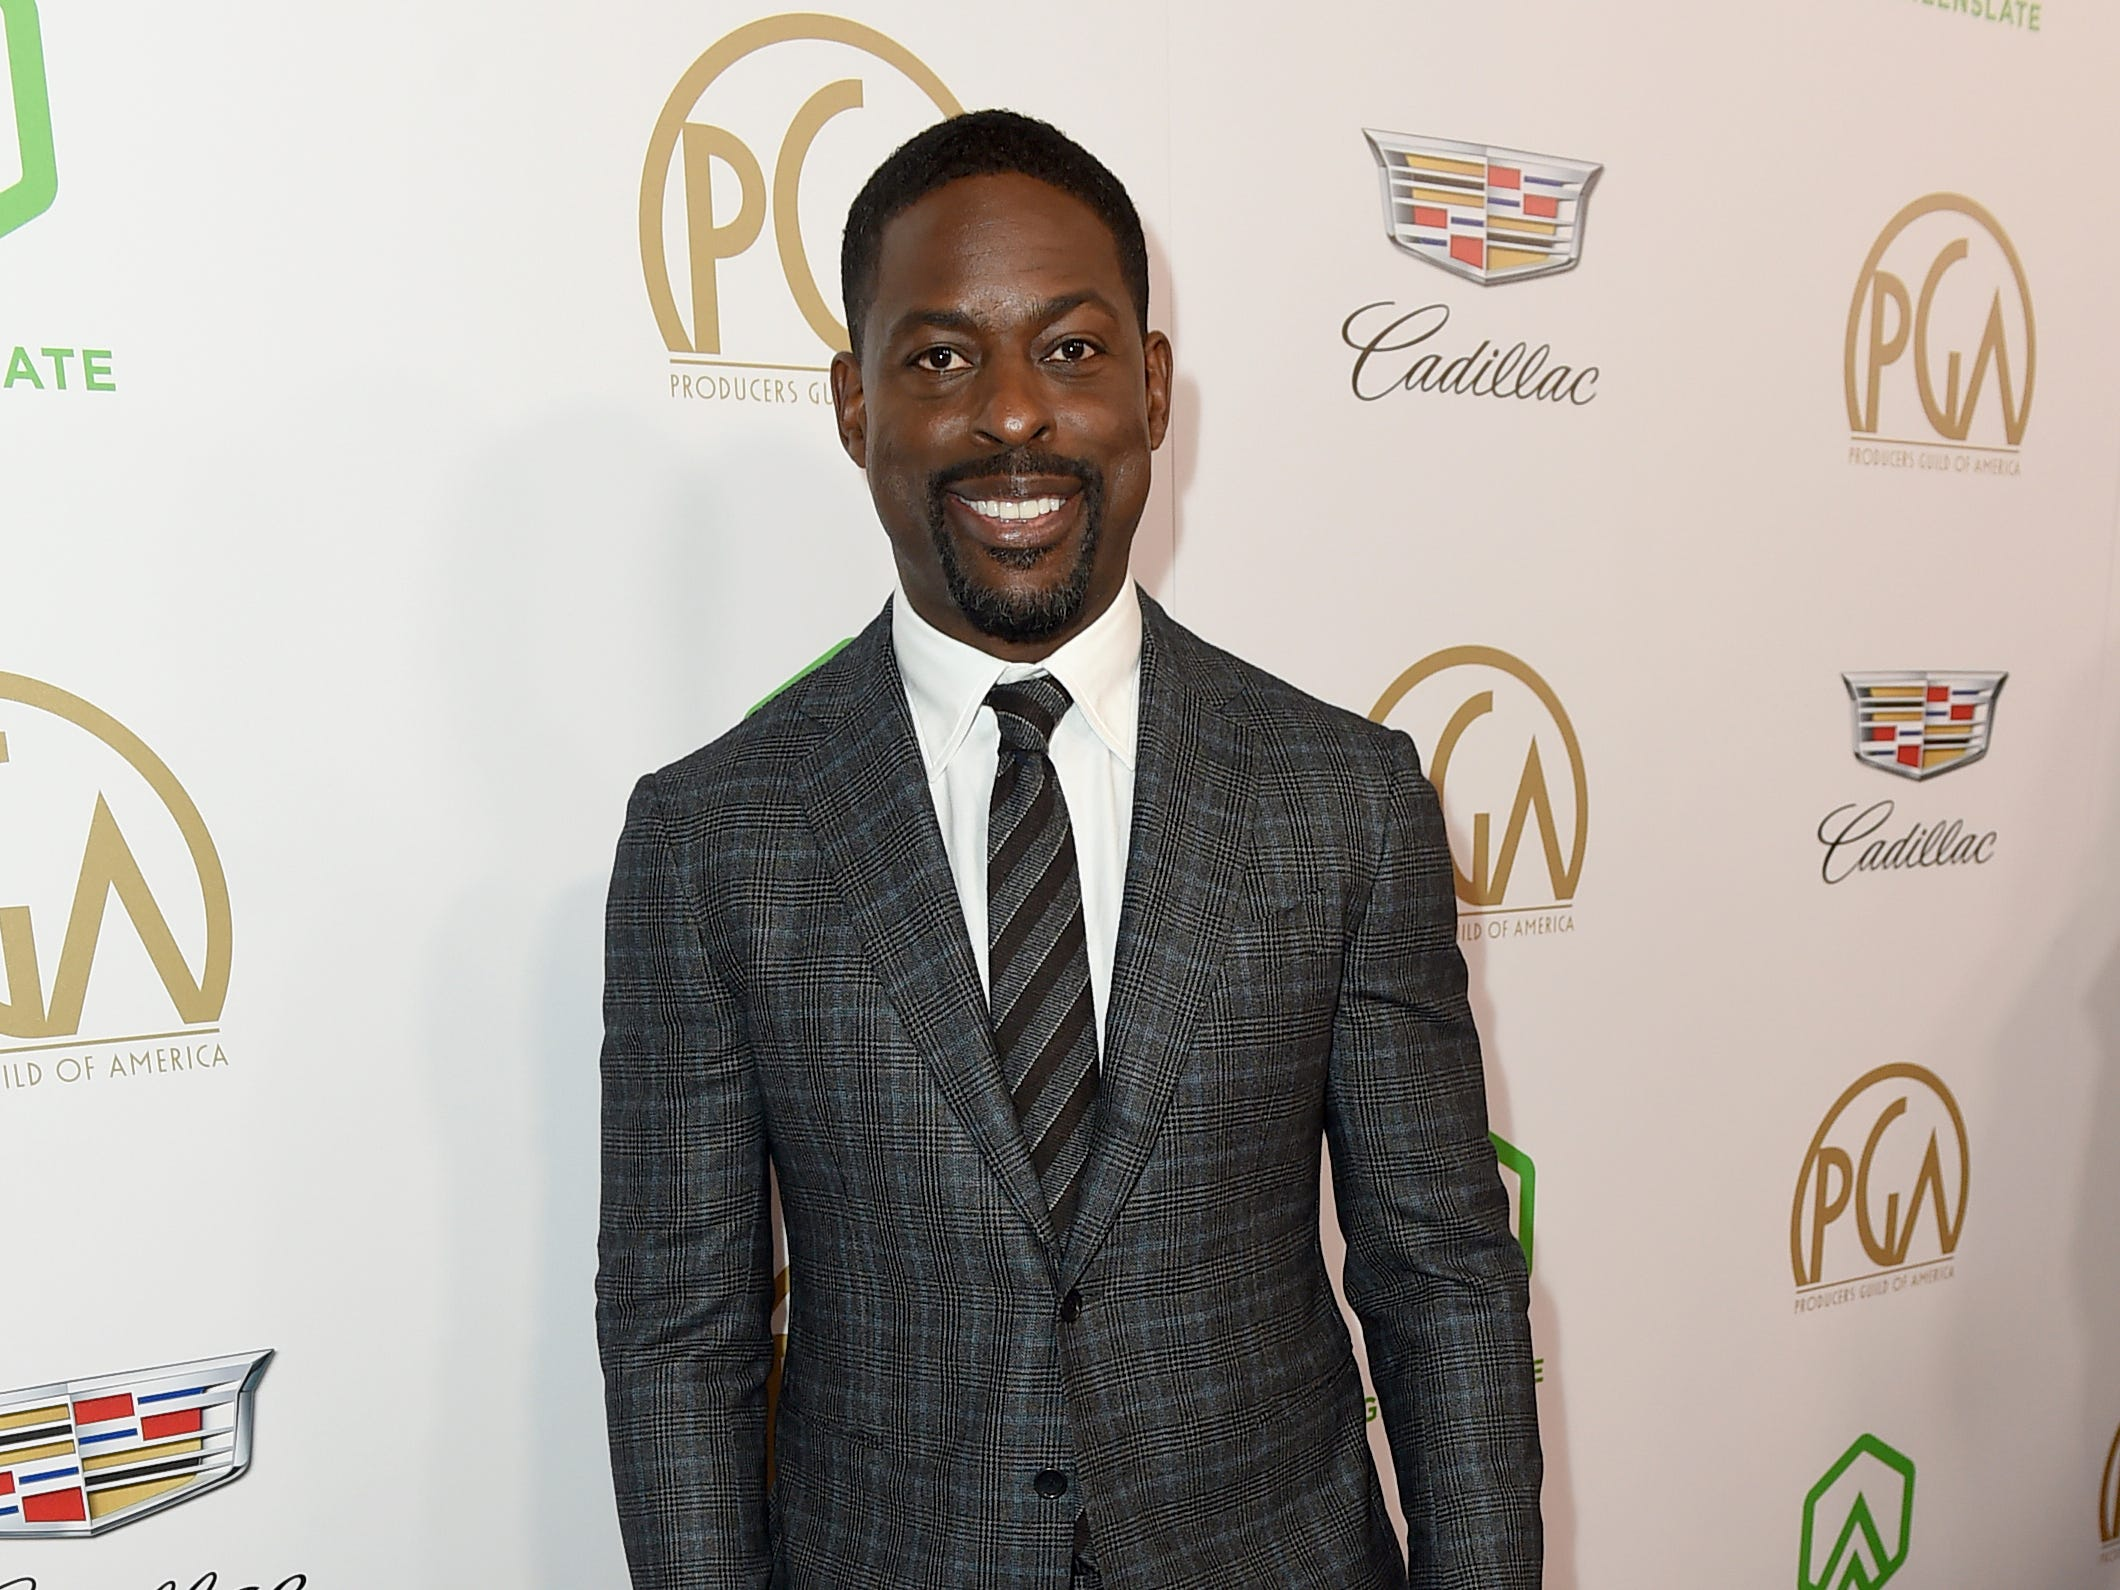 IMAGE DISTRIBUTED FOR PRODUCERS GUILD OF AMERICA - Sterling K. Brown arrives at the 30th Producers Guild Awards presented by Cadillac at the Beverly Hilton on Saturday, Jan. 19, 2019, in Beverly Hills, Calif. (Photo by Jordan Strauss/Invision for Producers Guild of America/AP Images) ORG XMIT: CALB117